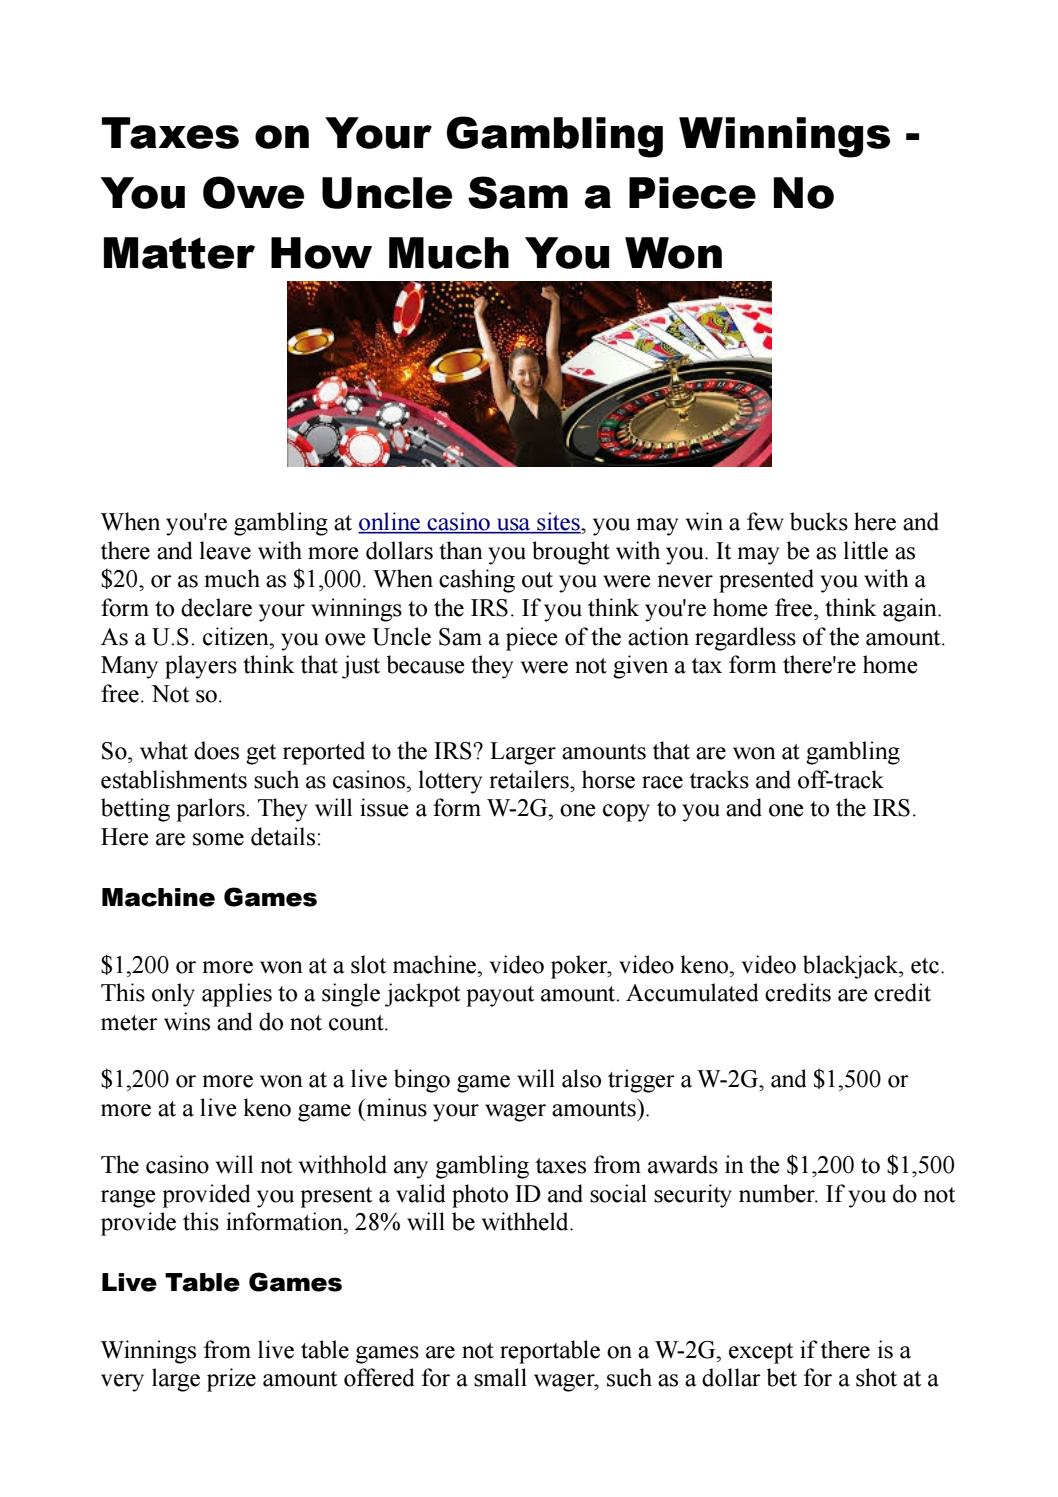 Sports betting winnings taxes on social security off track betting rochester ny